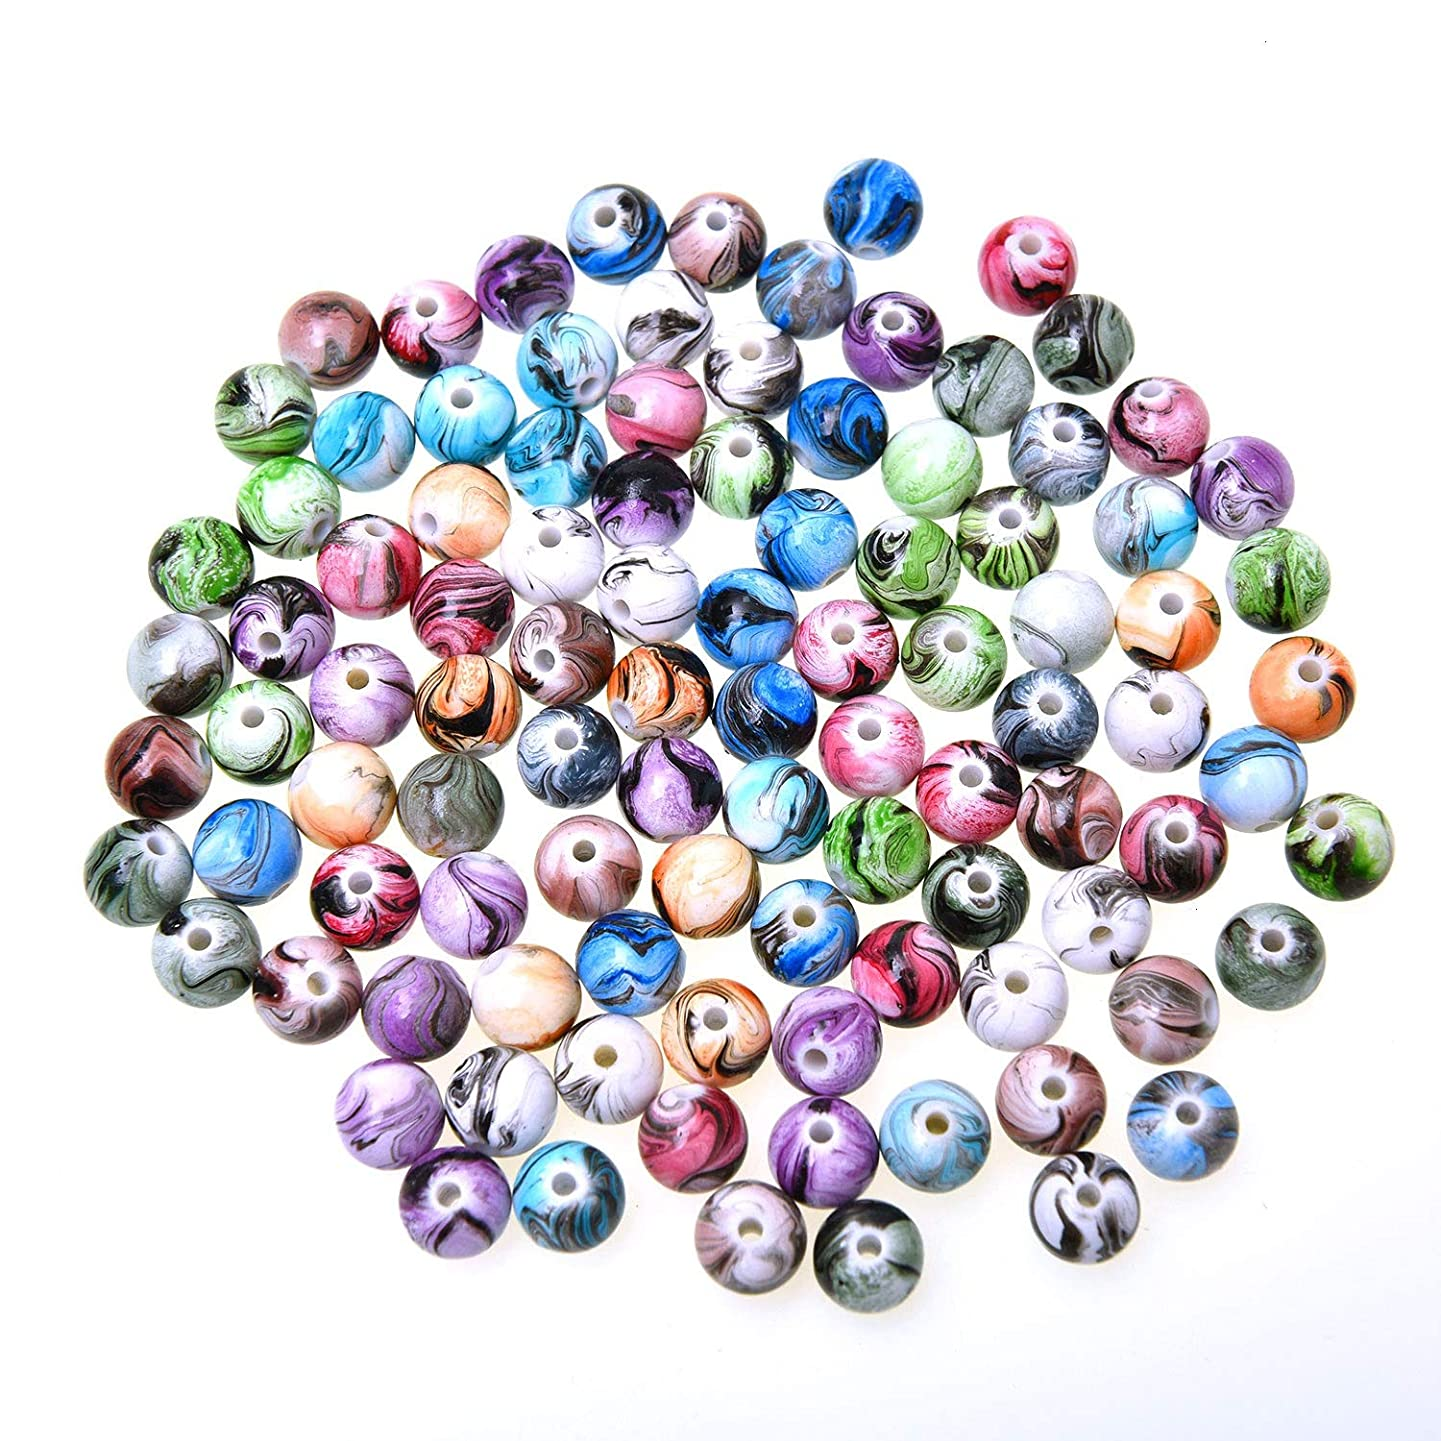 Monrocco 100pcs 8mm Multi Color Acrylic Round Loose Beads in Ink Patterns